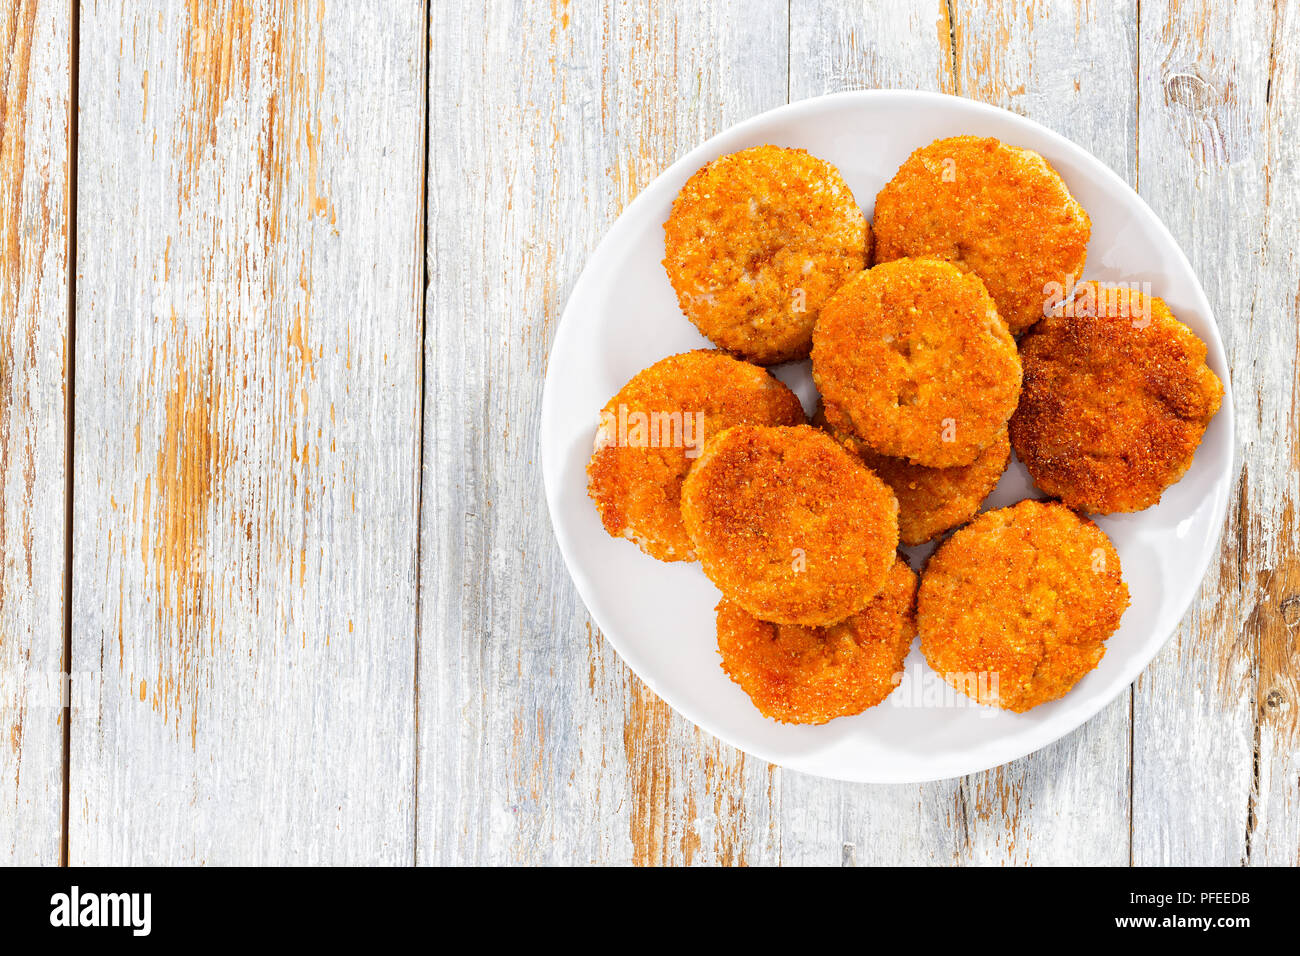 juicy delicious corn breaded meat cutlets on white plate on old wooden peeling paint planks, view from above - Stock Image